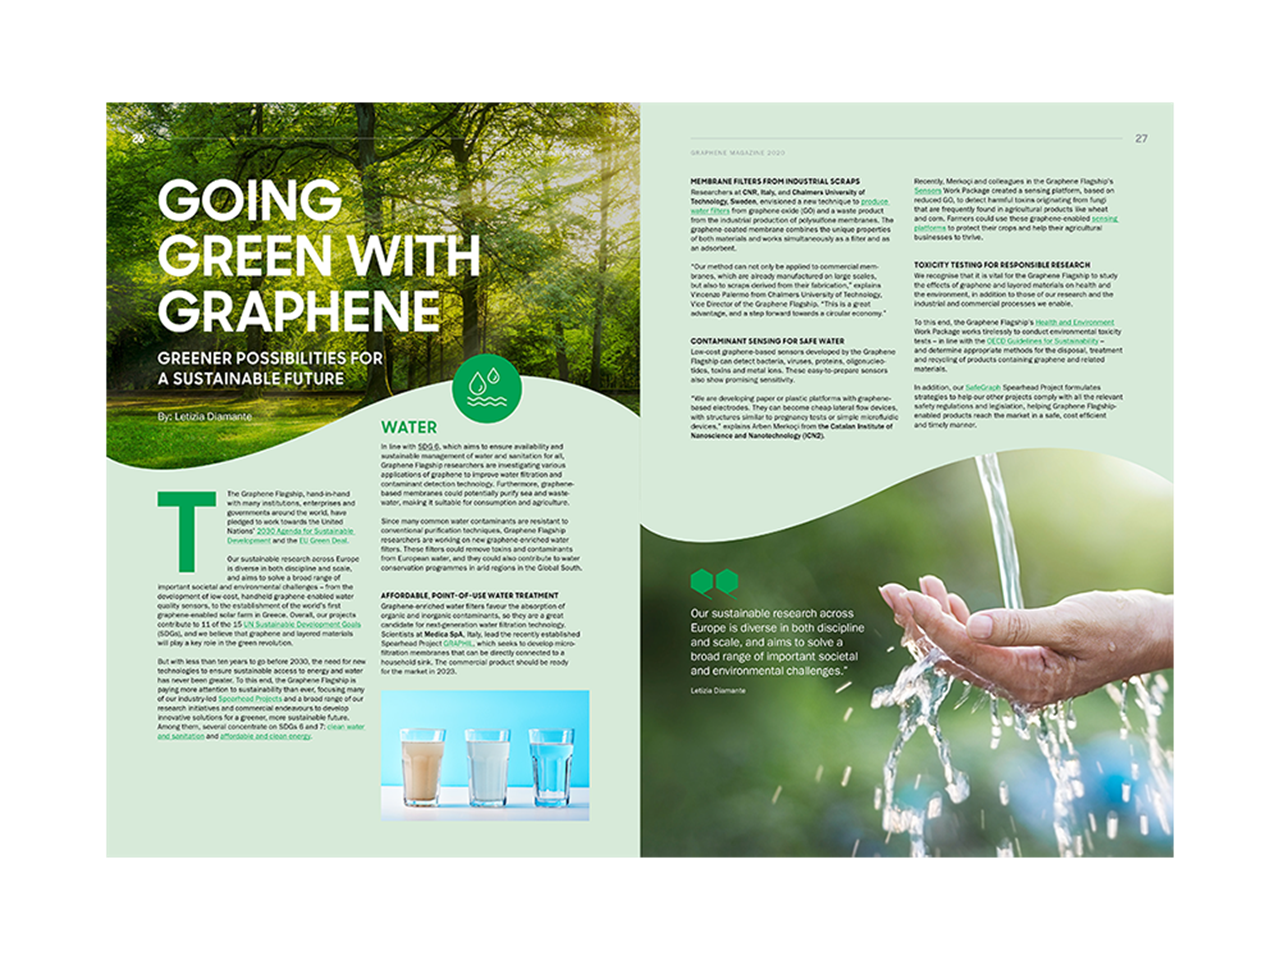 Magazine article image: Going green with graphene